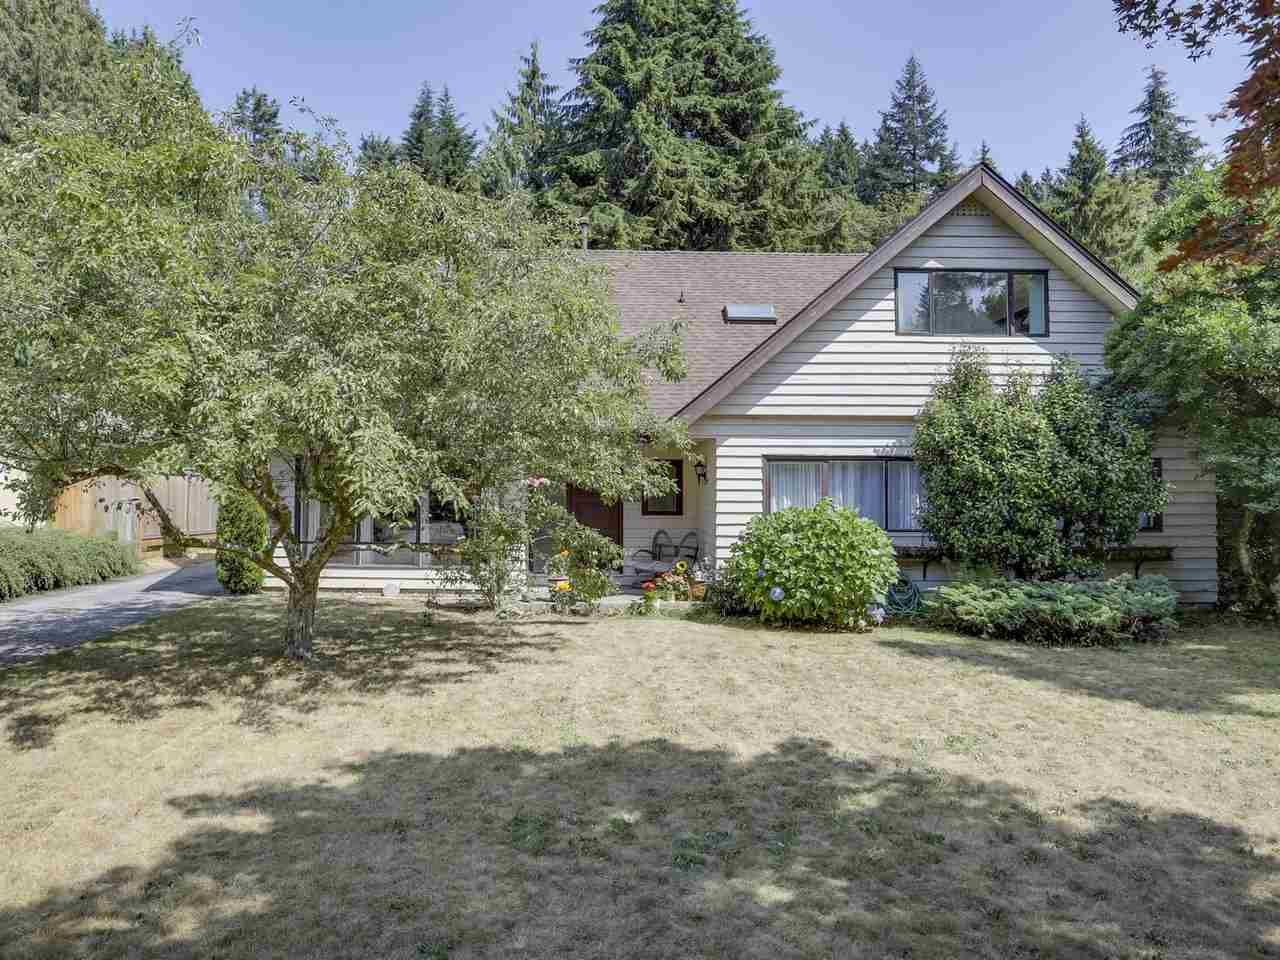 Main Photo: 5730 CRANLEY Drive in West Vancouver: Eagle Harbour House for sale : MLS®# R2293424